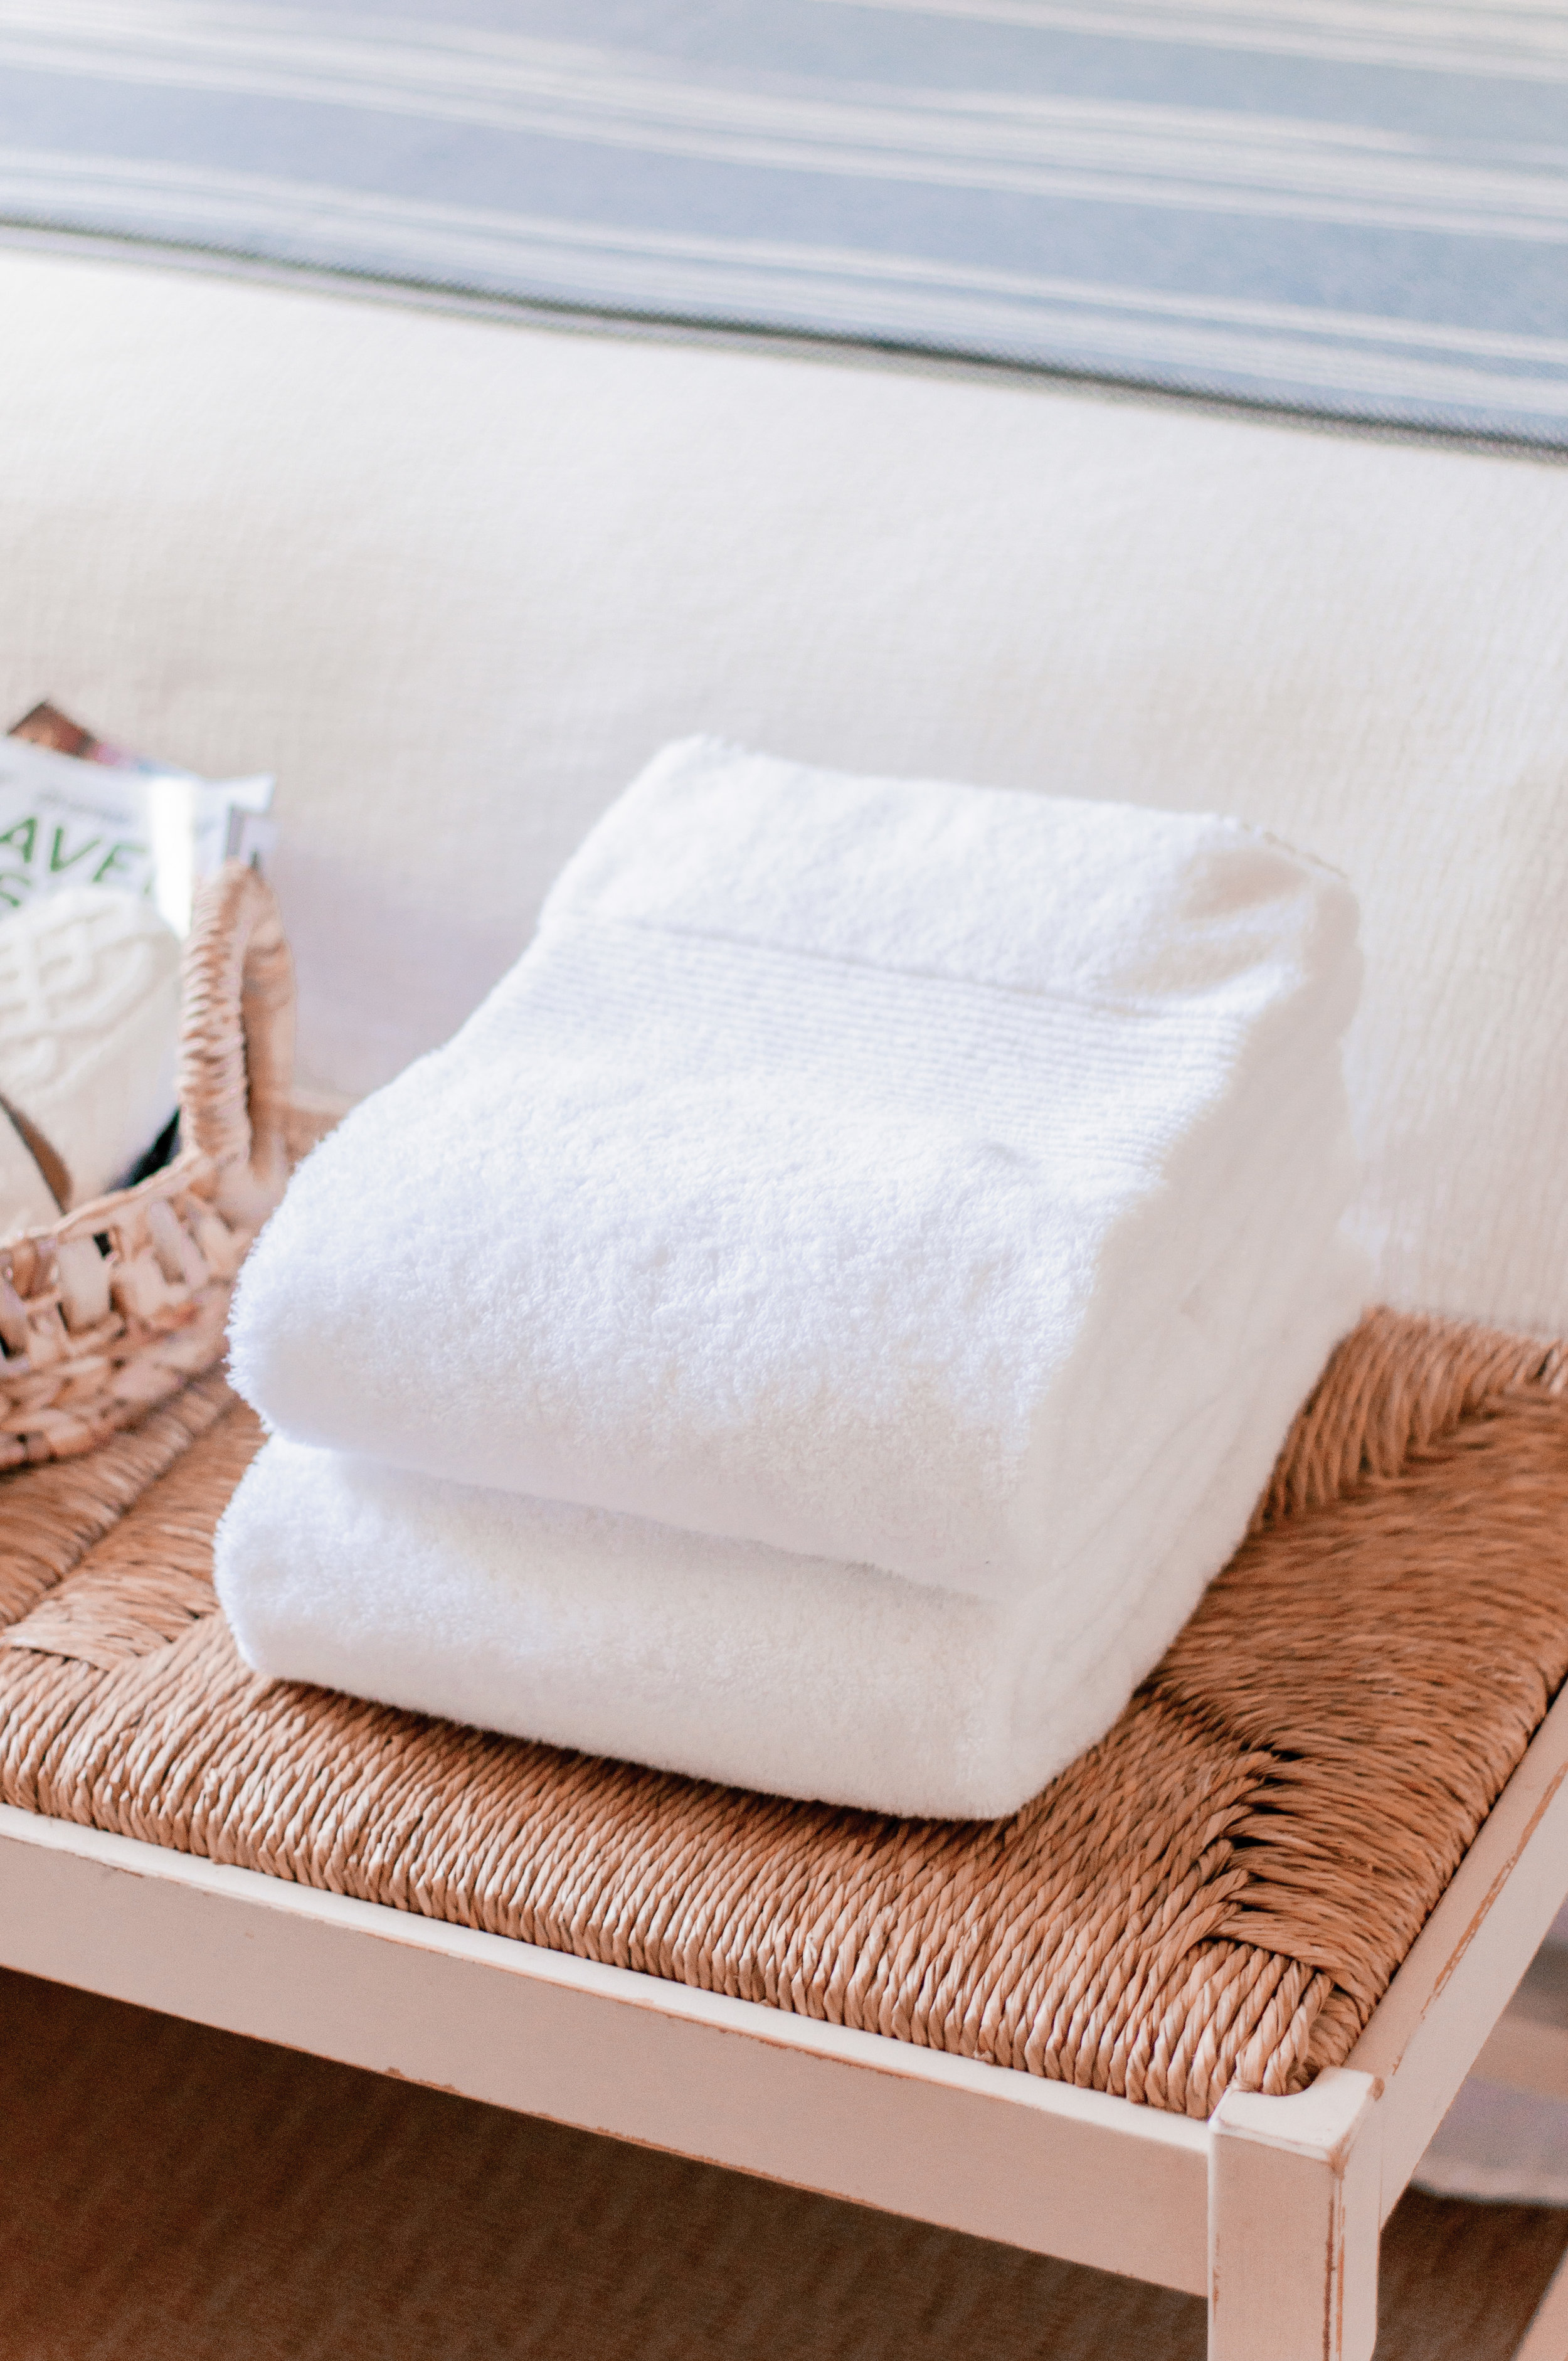 The Best Soft, Fluffy White Towels